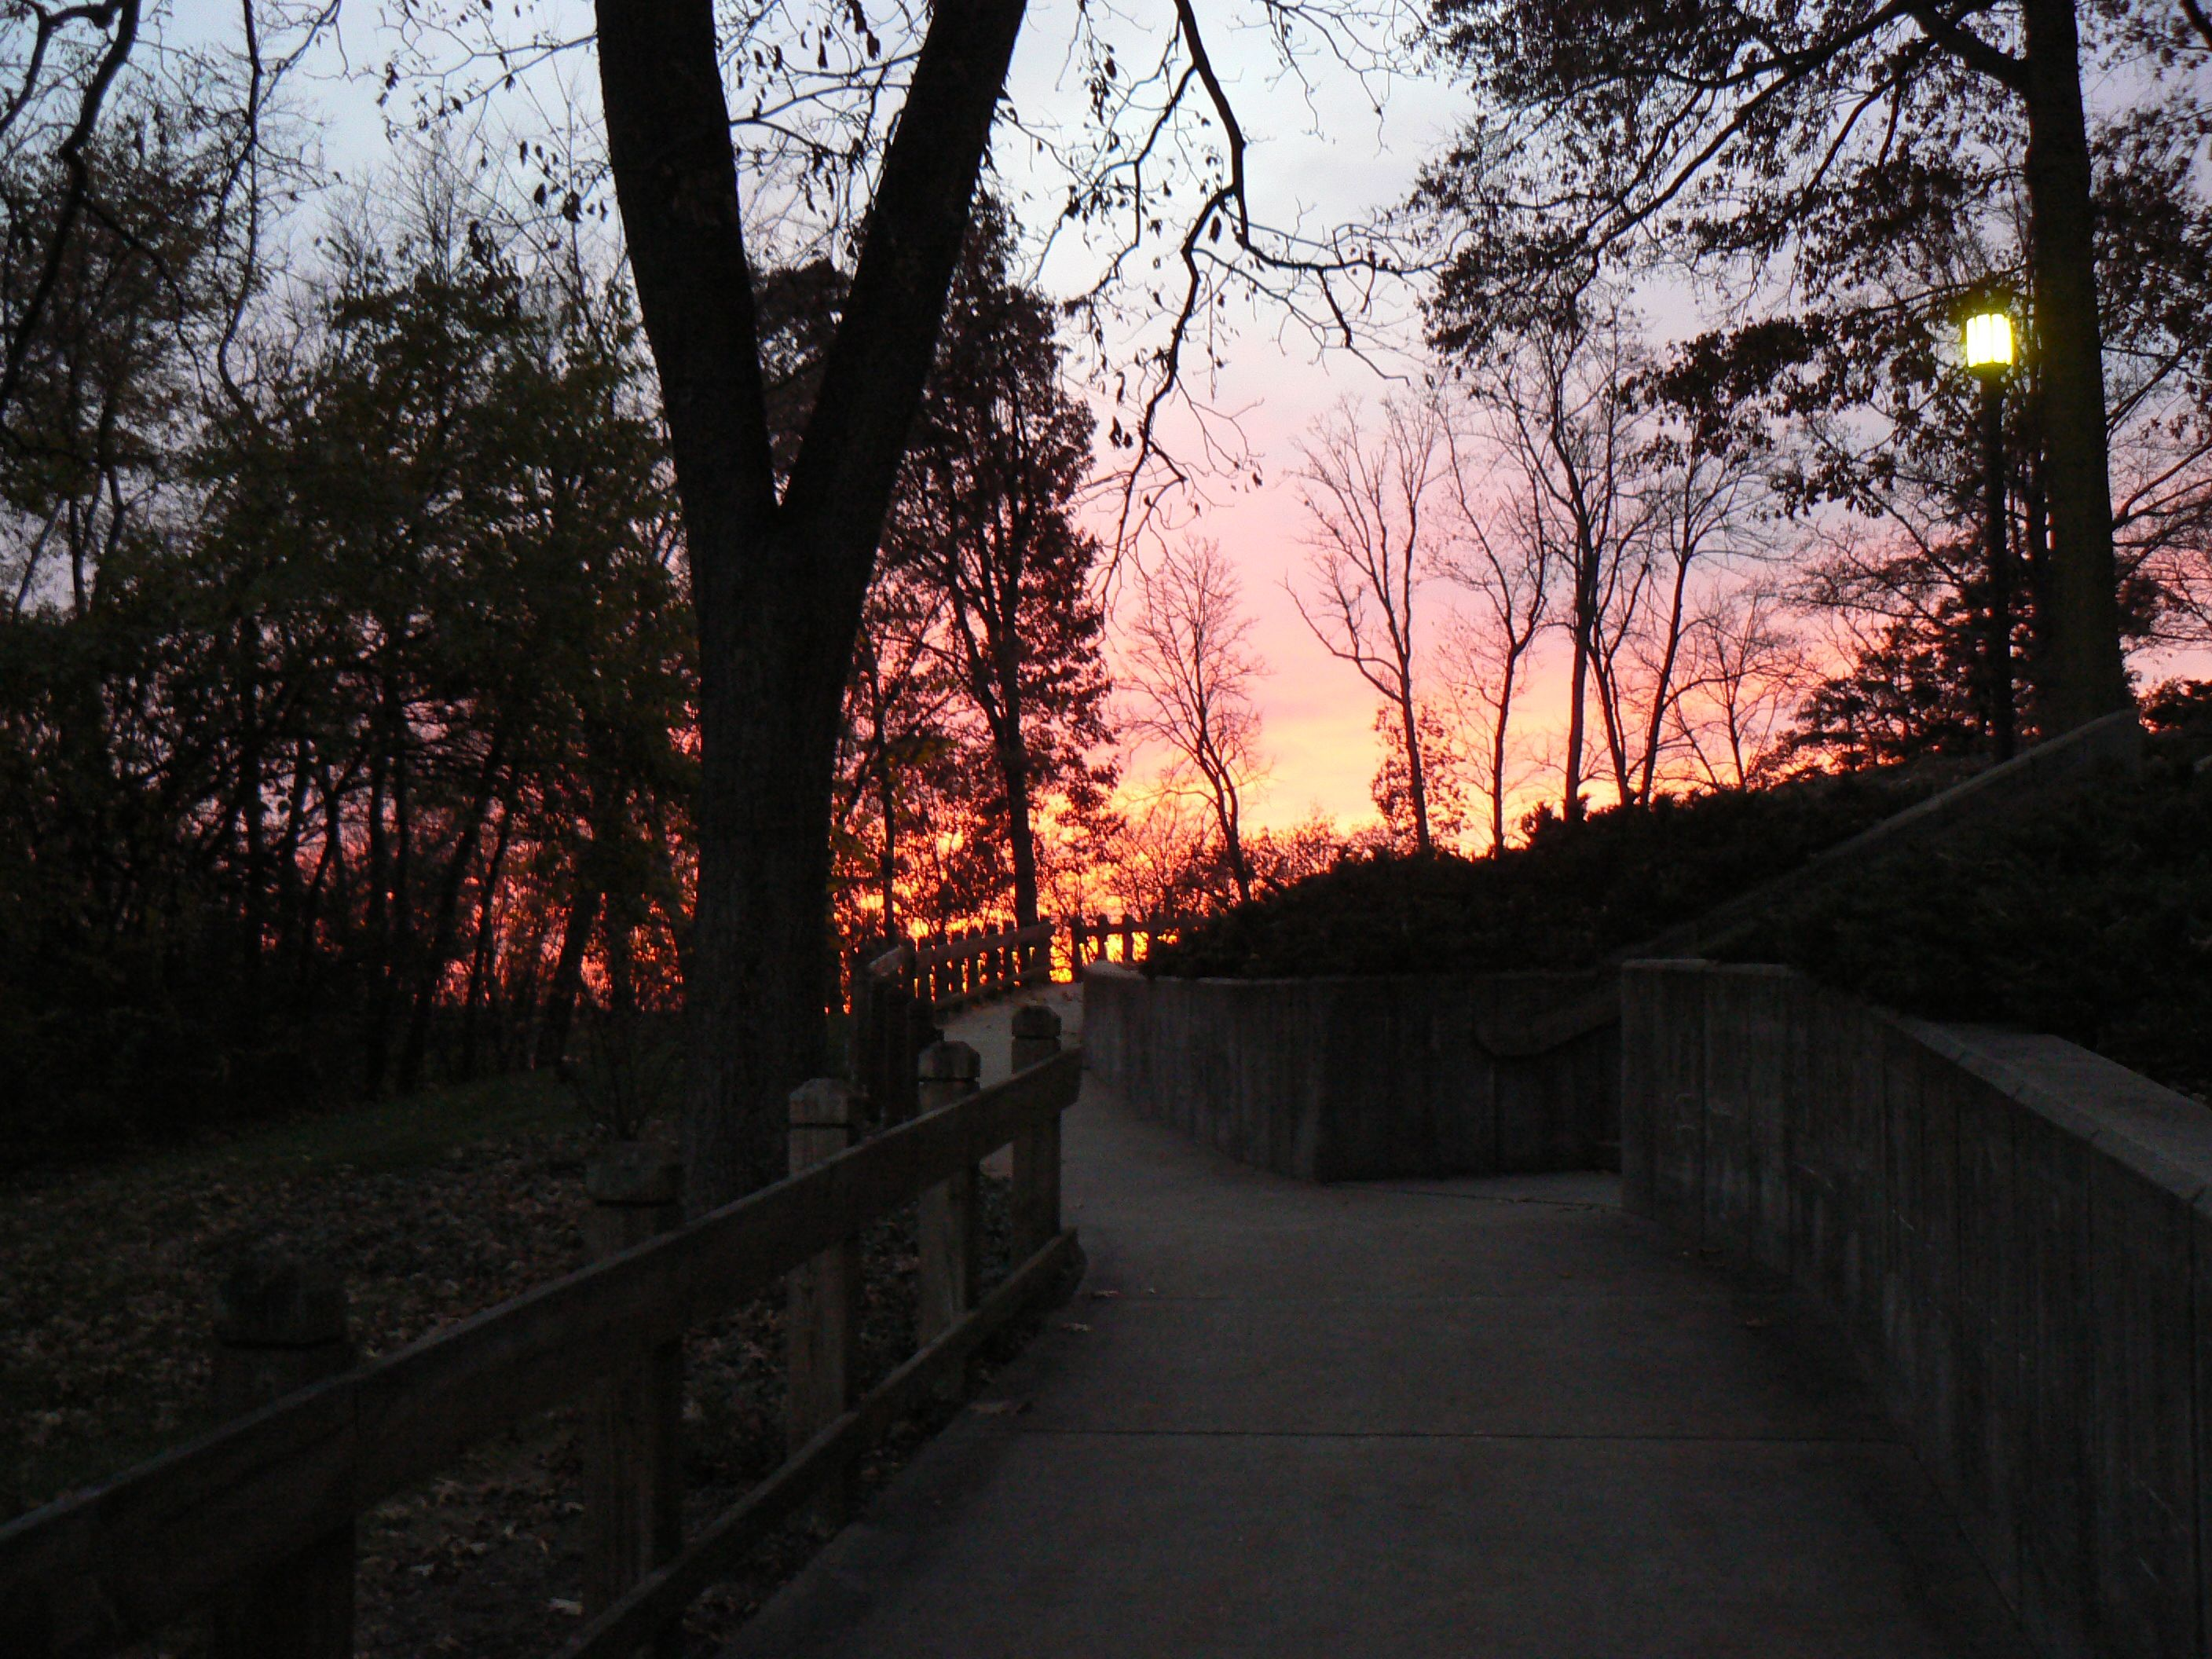 Walkway to Manor House as sun sets